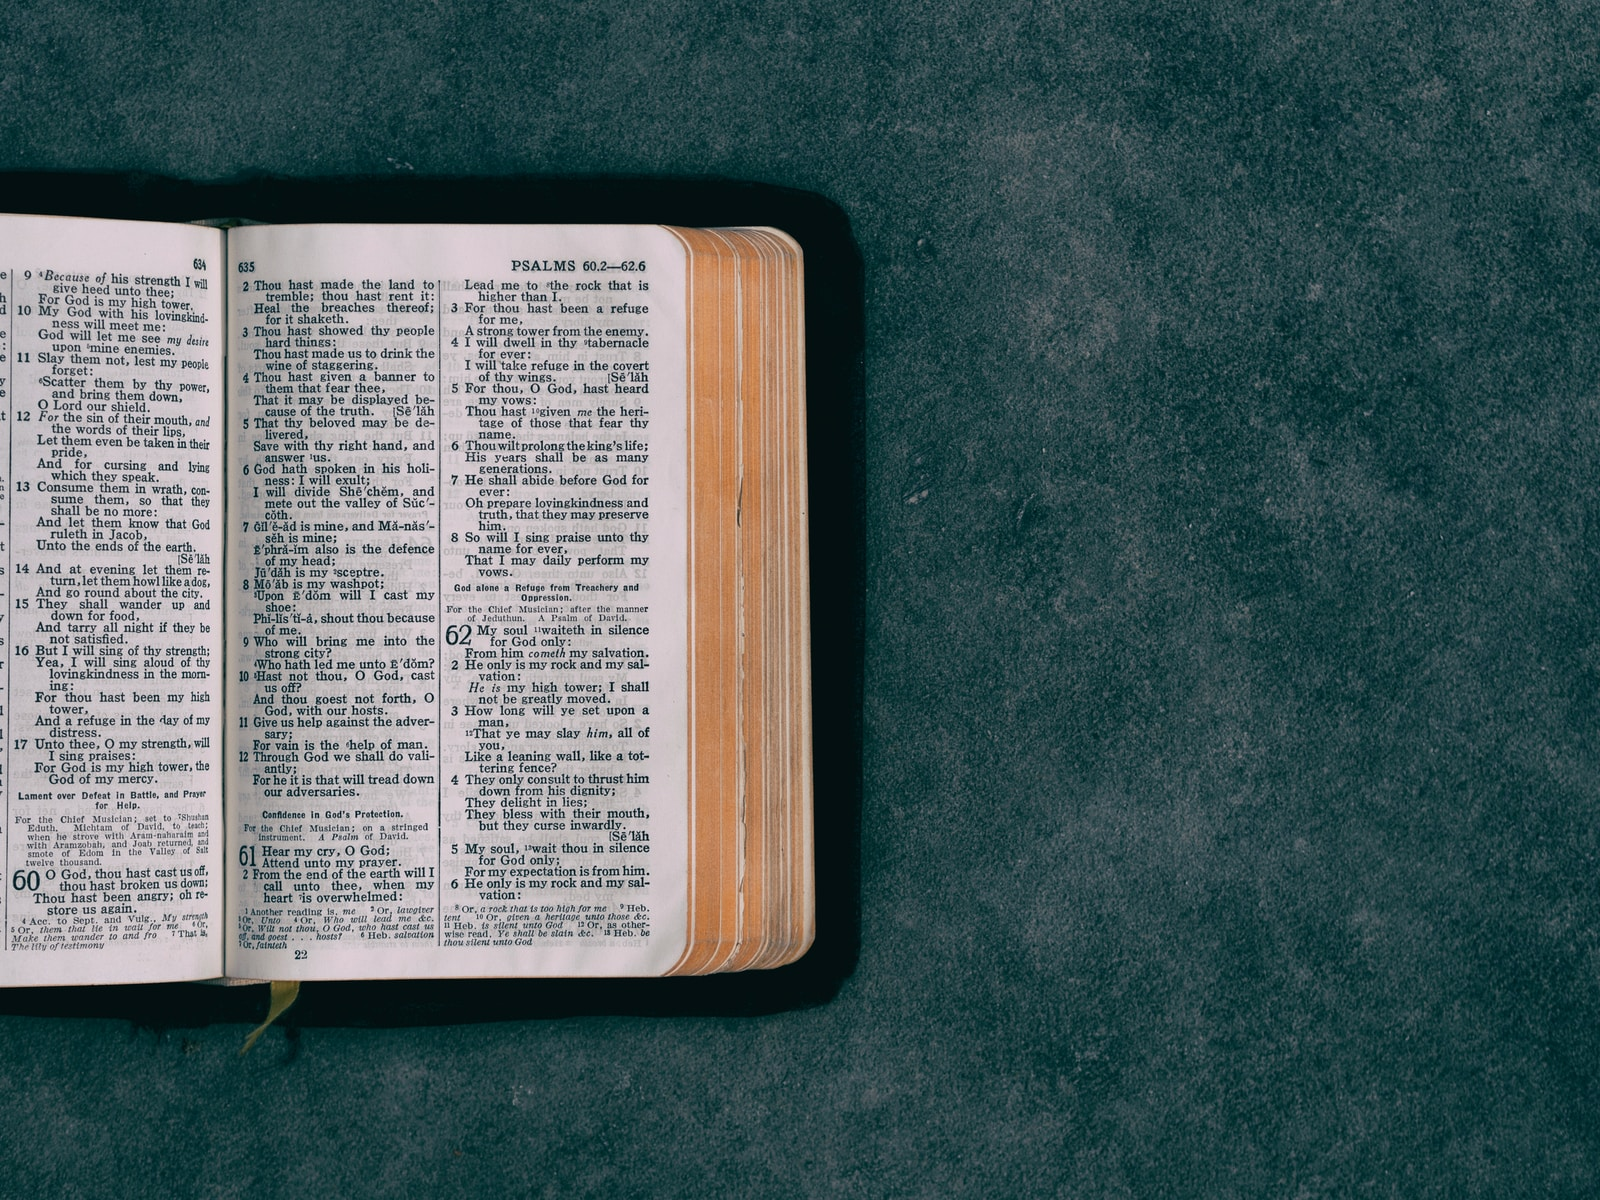 open pocket bible on green surface